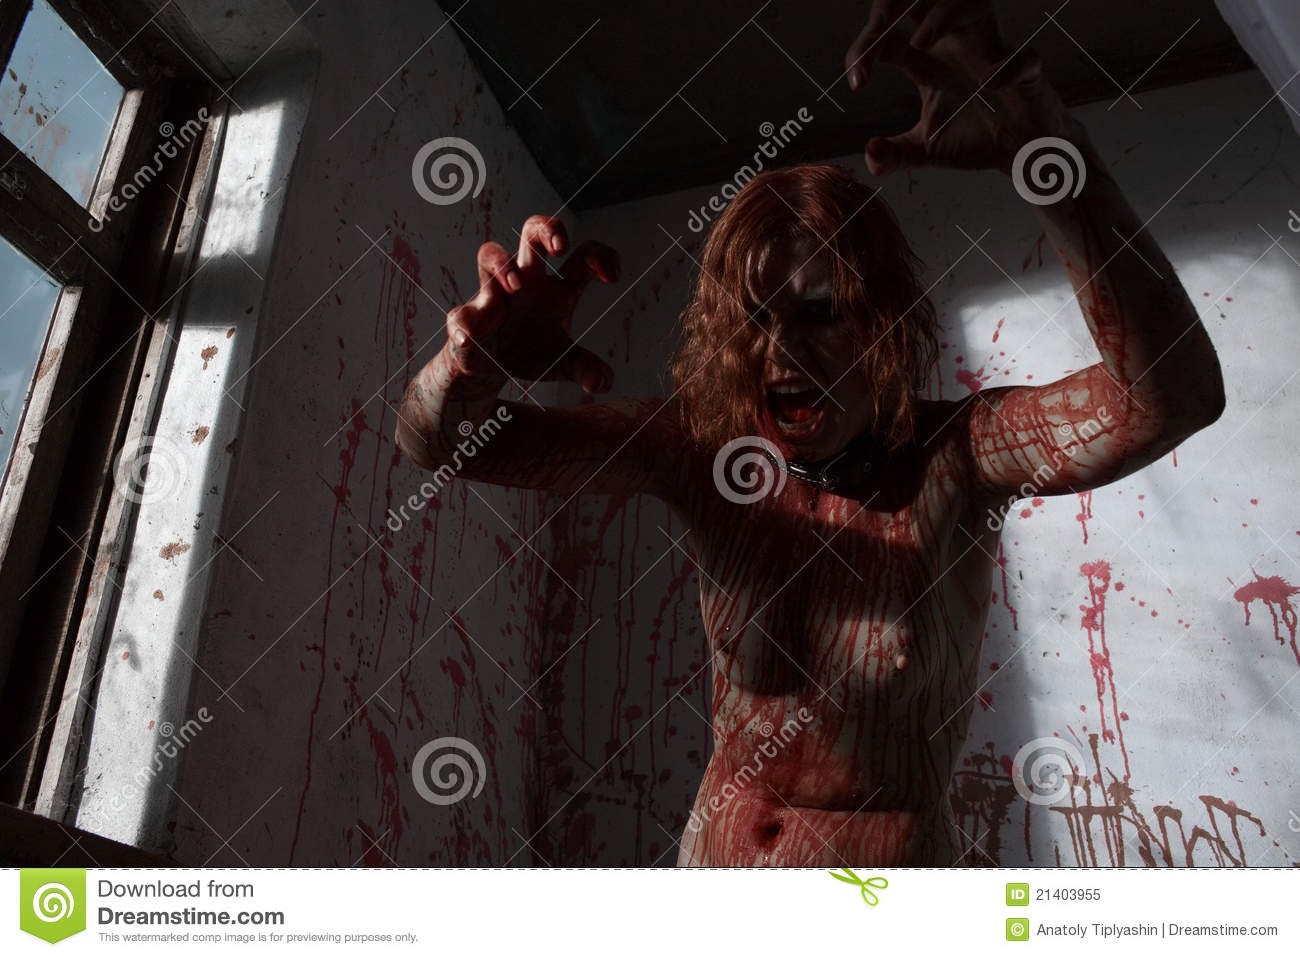 Zombie girl royalty free stock photo image 21403955 for Mirror zombie girl